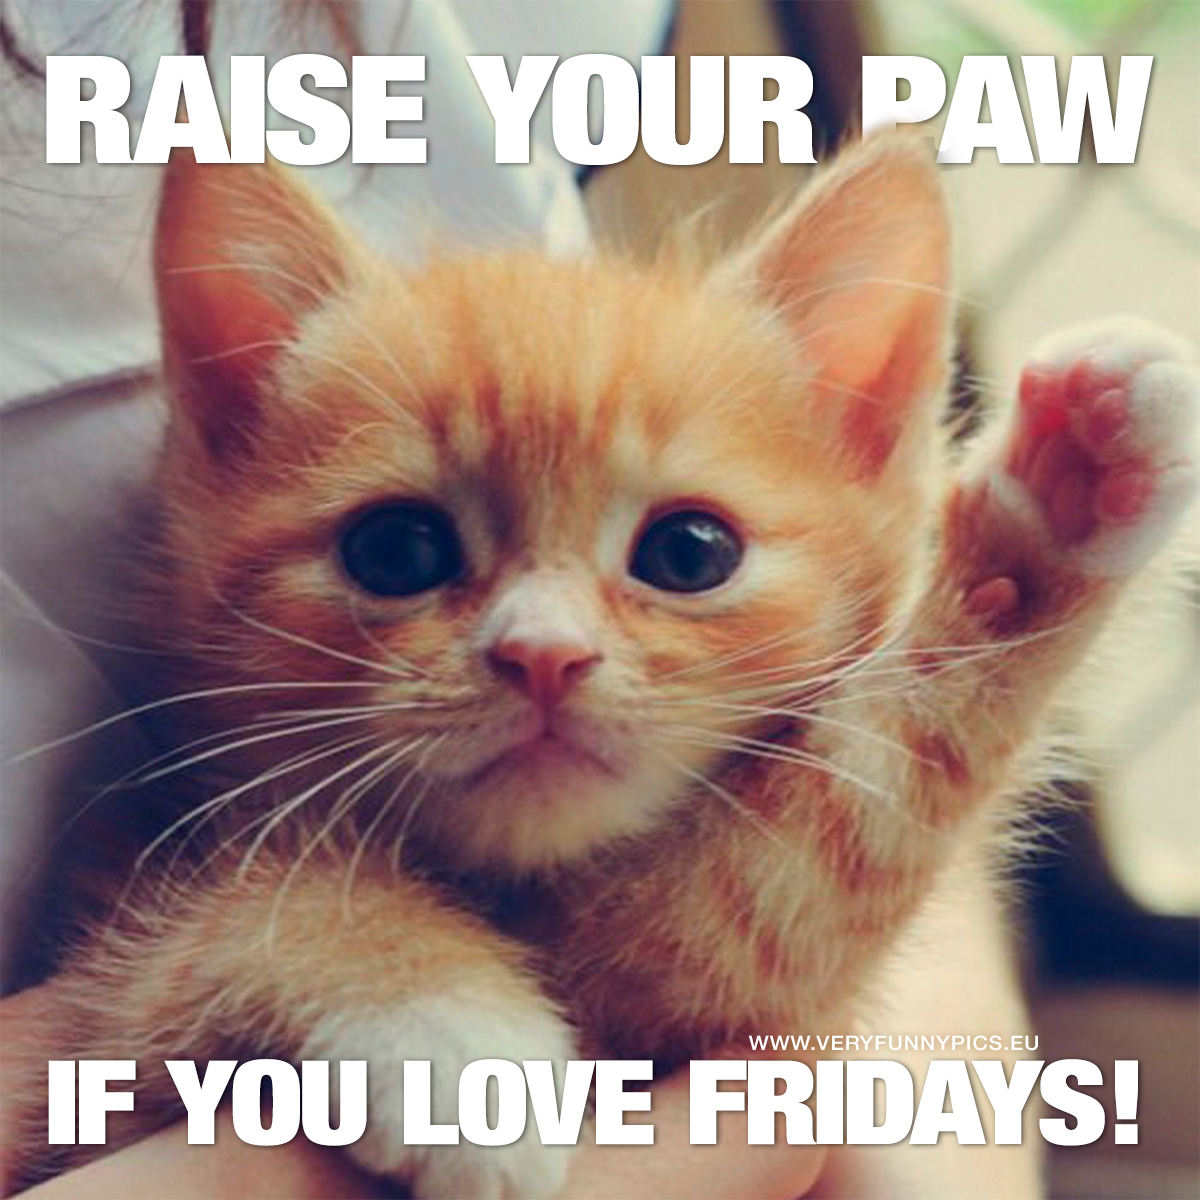 Cat holding up paw - Raise your paw if you love fridays!